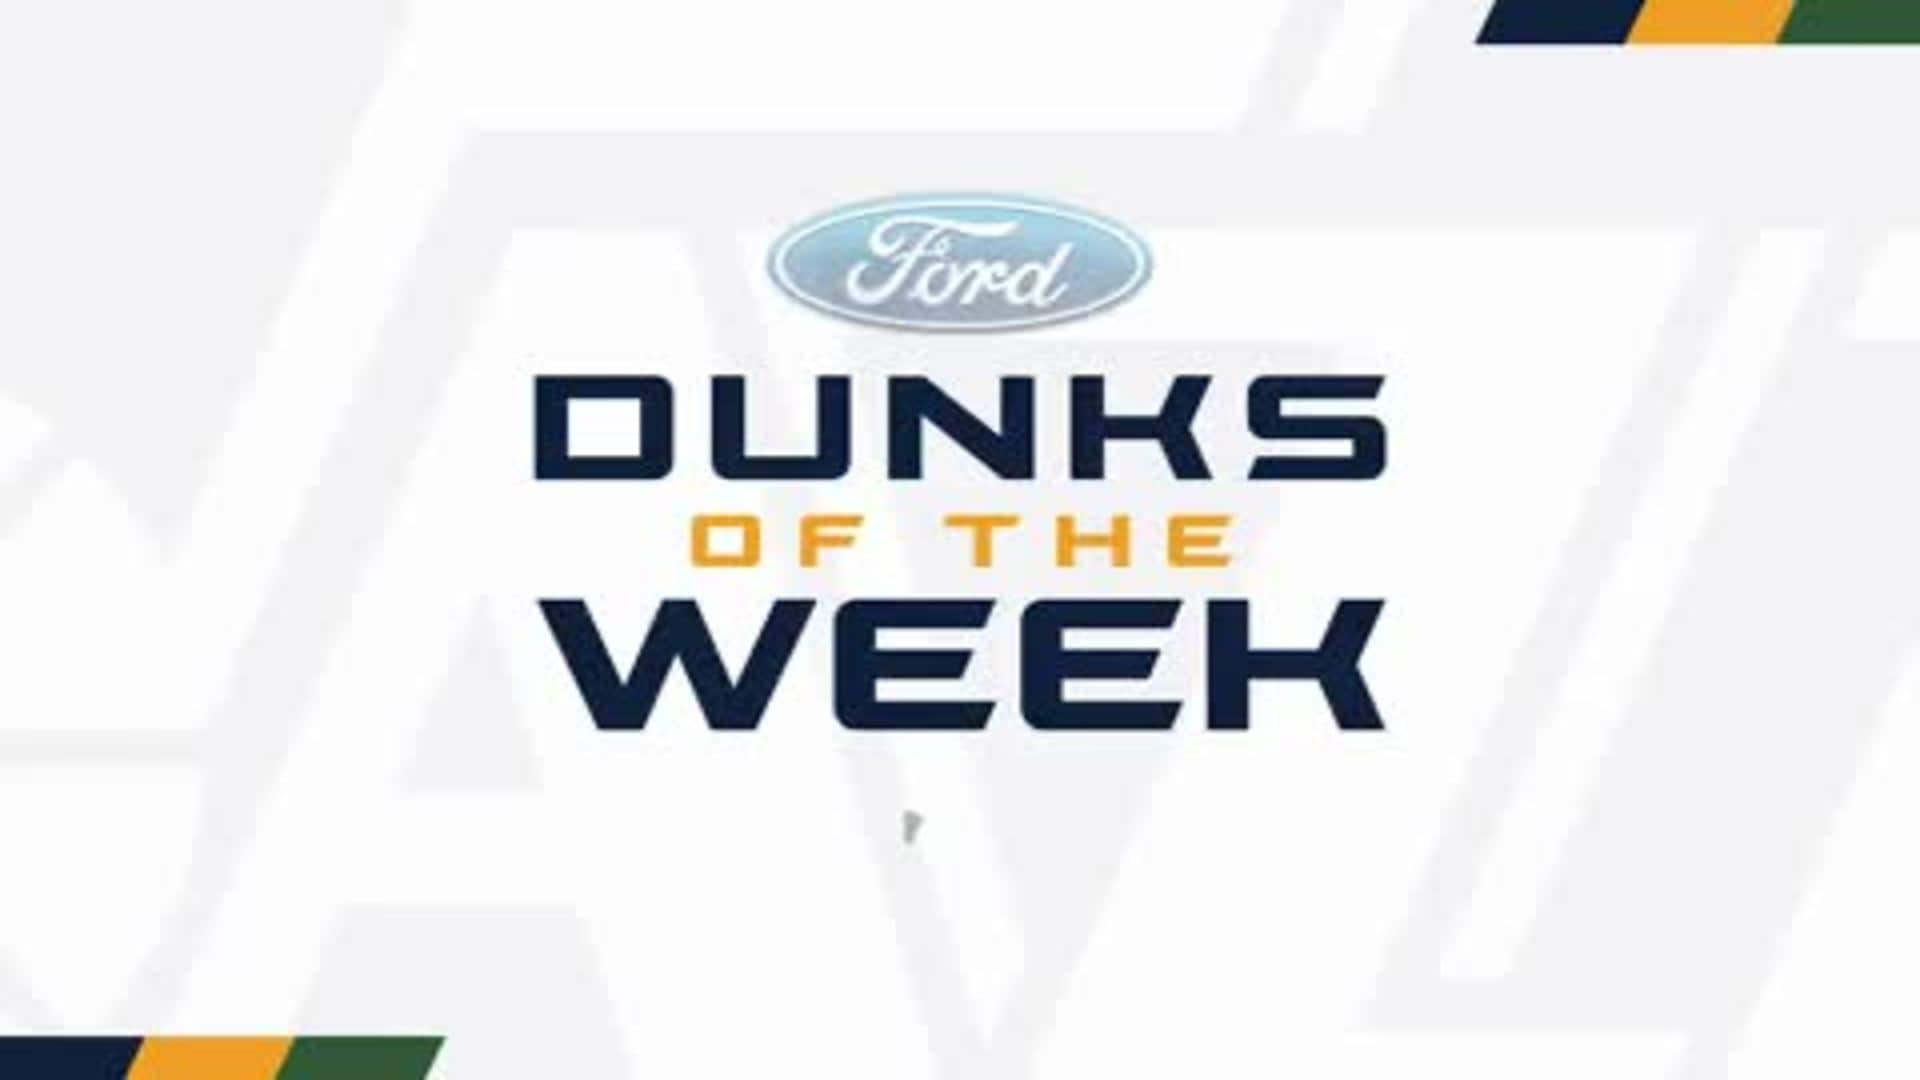 Dunks of the Week - 12.12.19